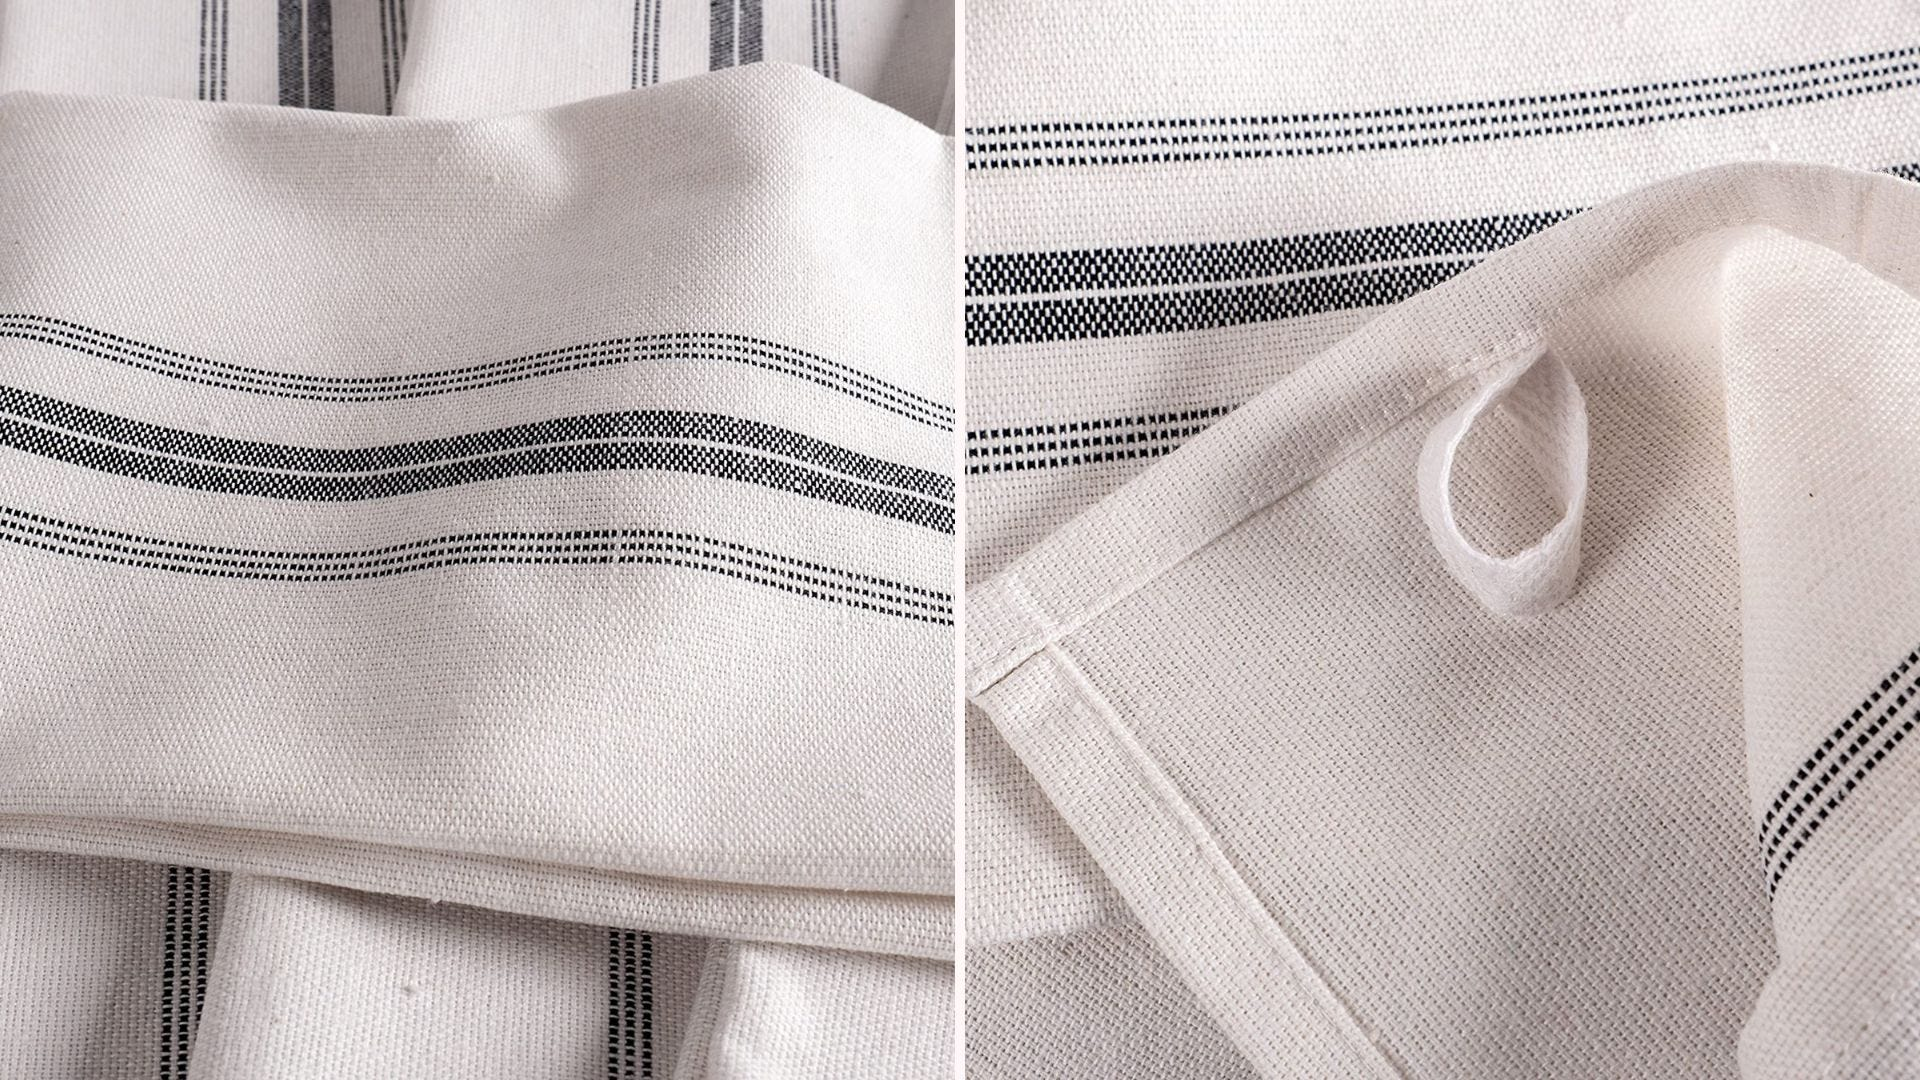 White kitchen towels with gray stripe design down the middle